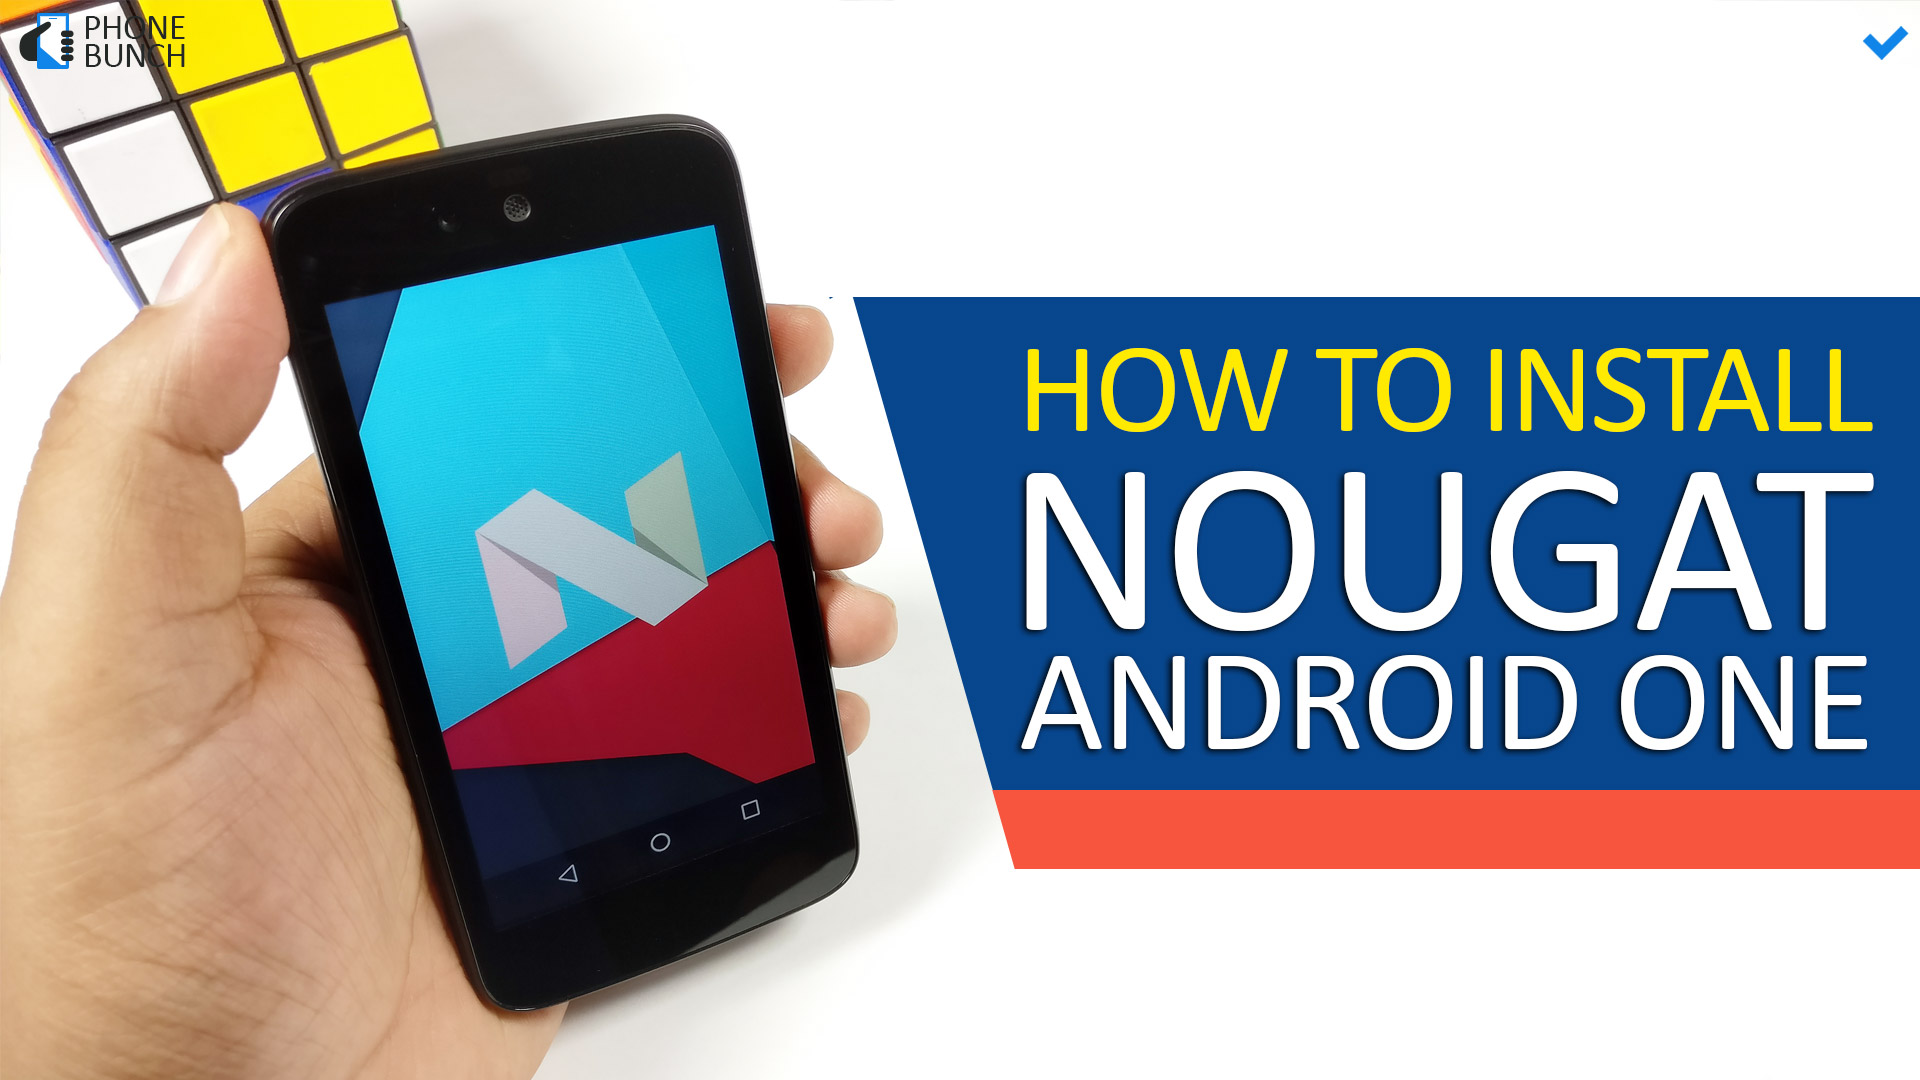 how to nougat android one